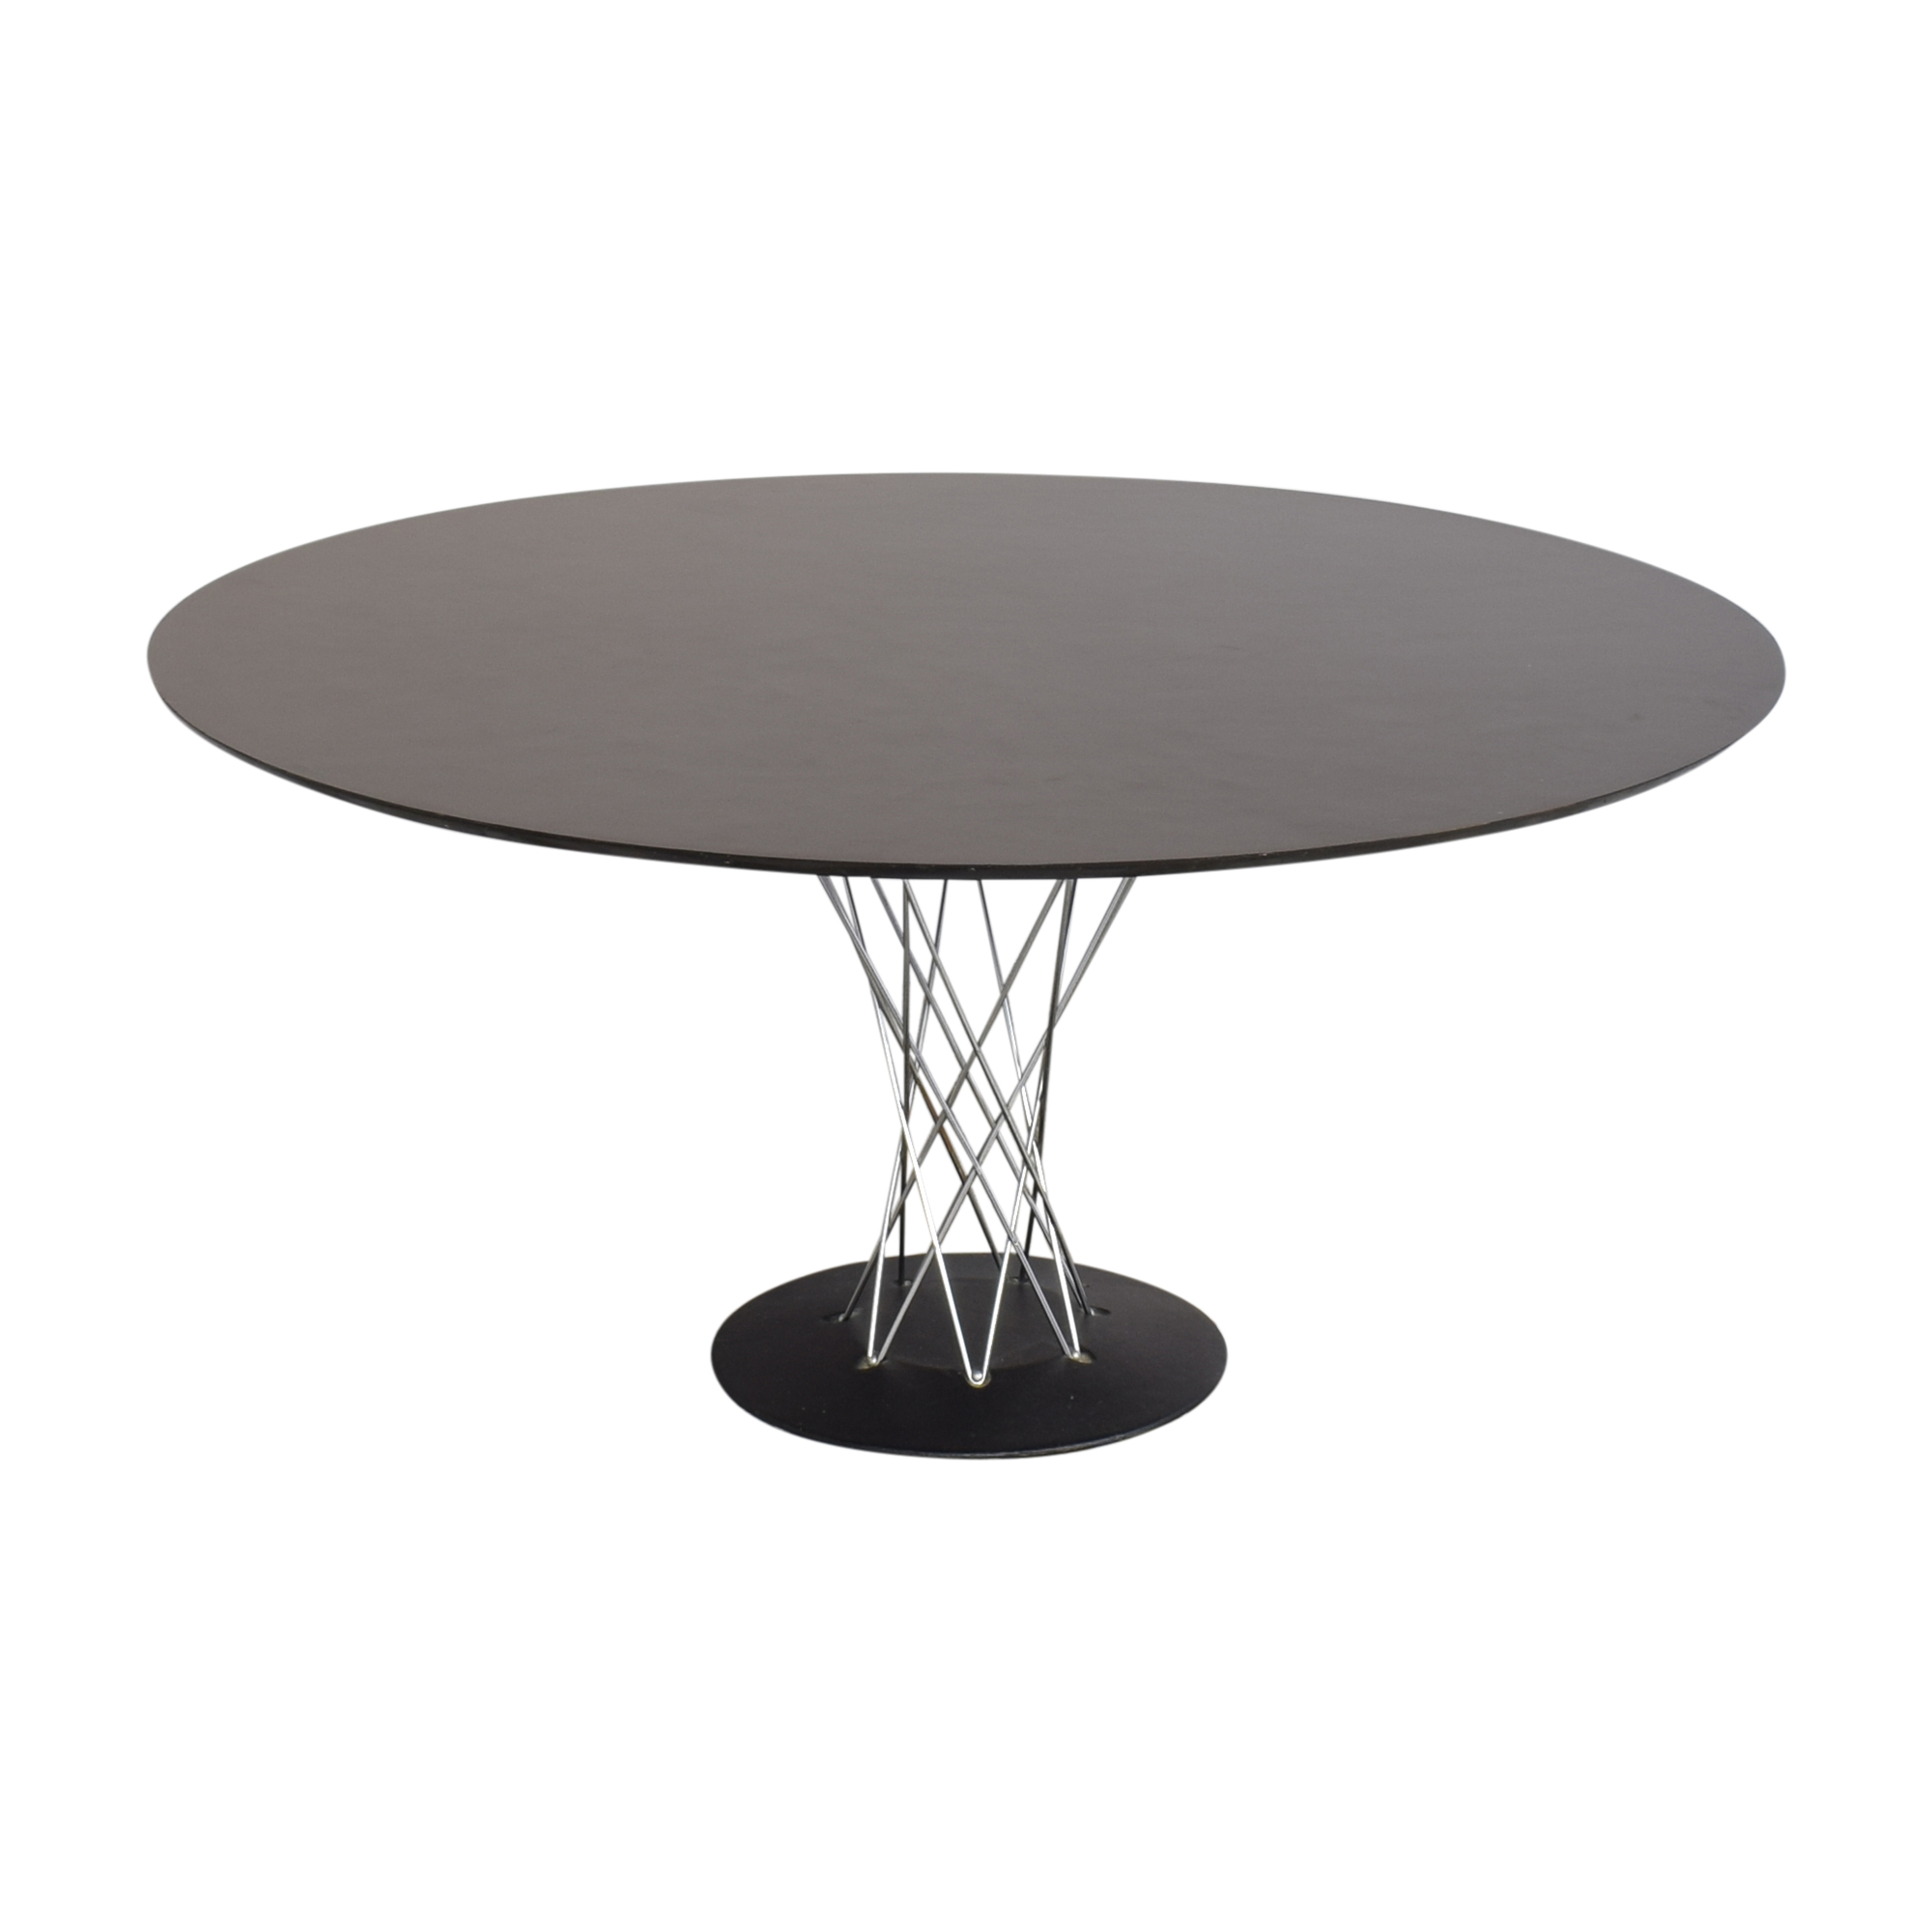 Modernica Cyclone Dining Table by Isamu Noguchi / Dinner Tables